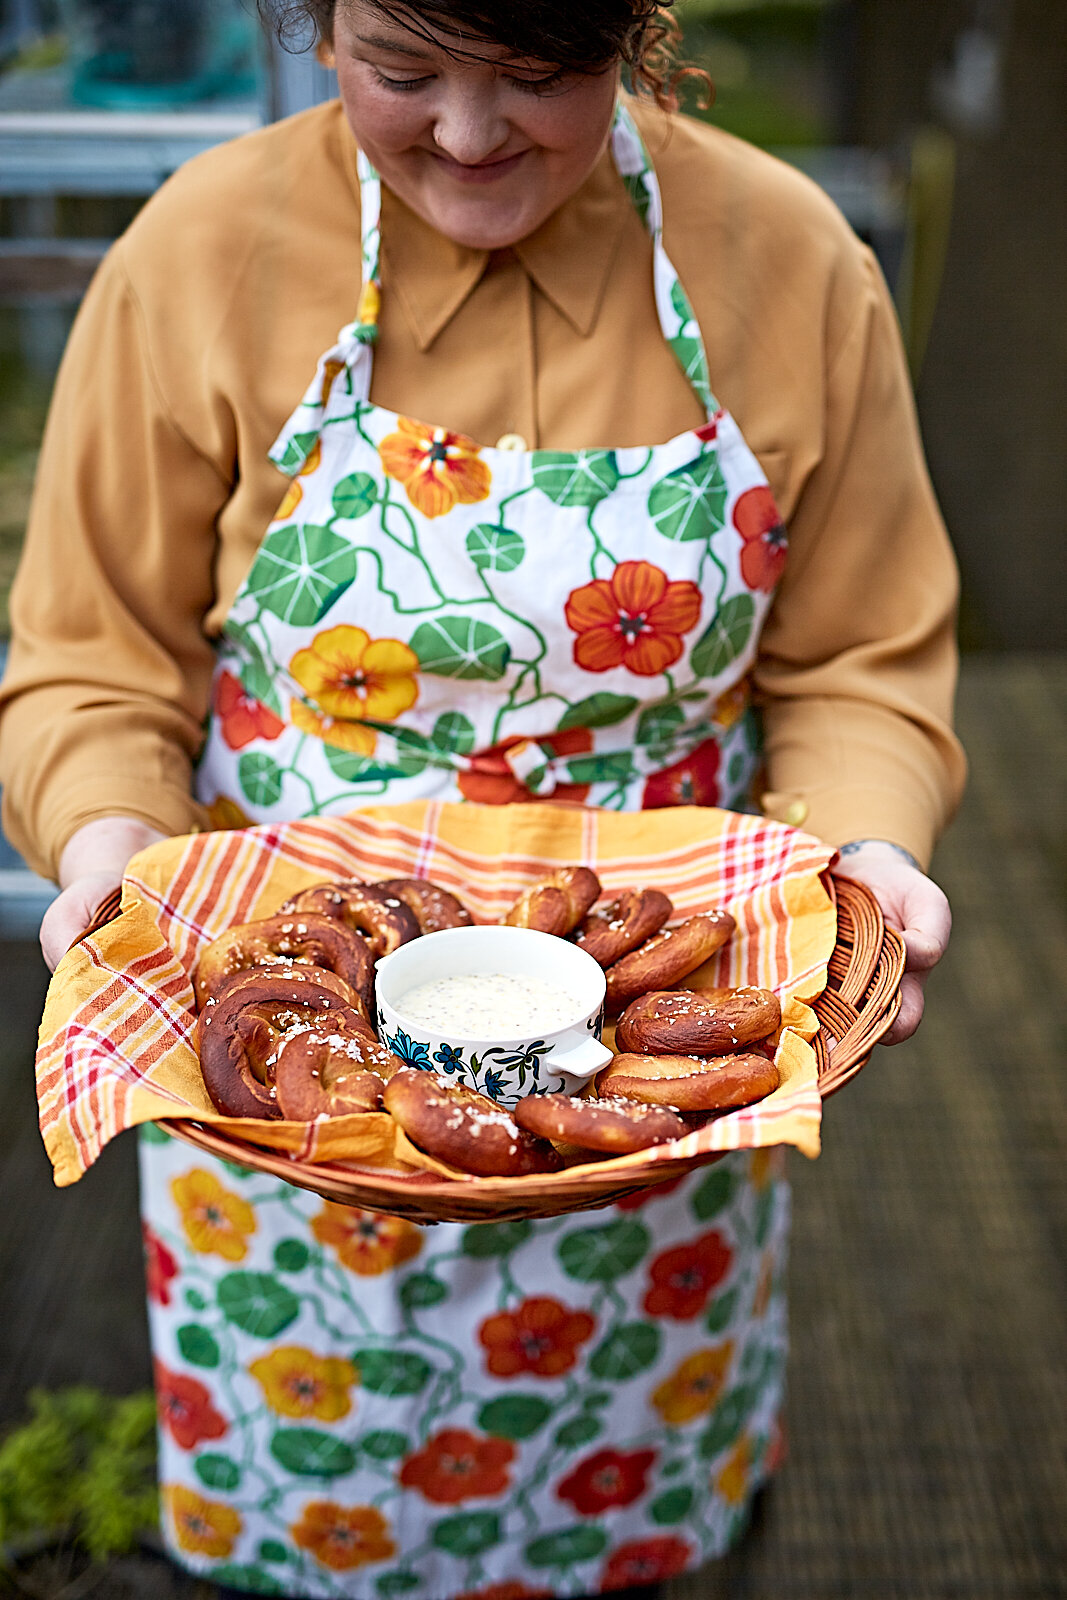 Clare and her amazing pretzels with mustard dip